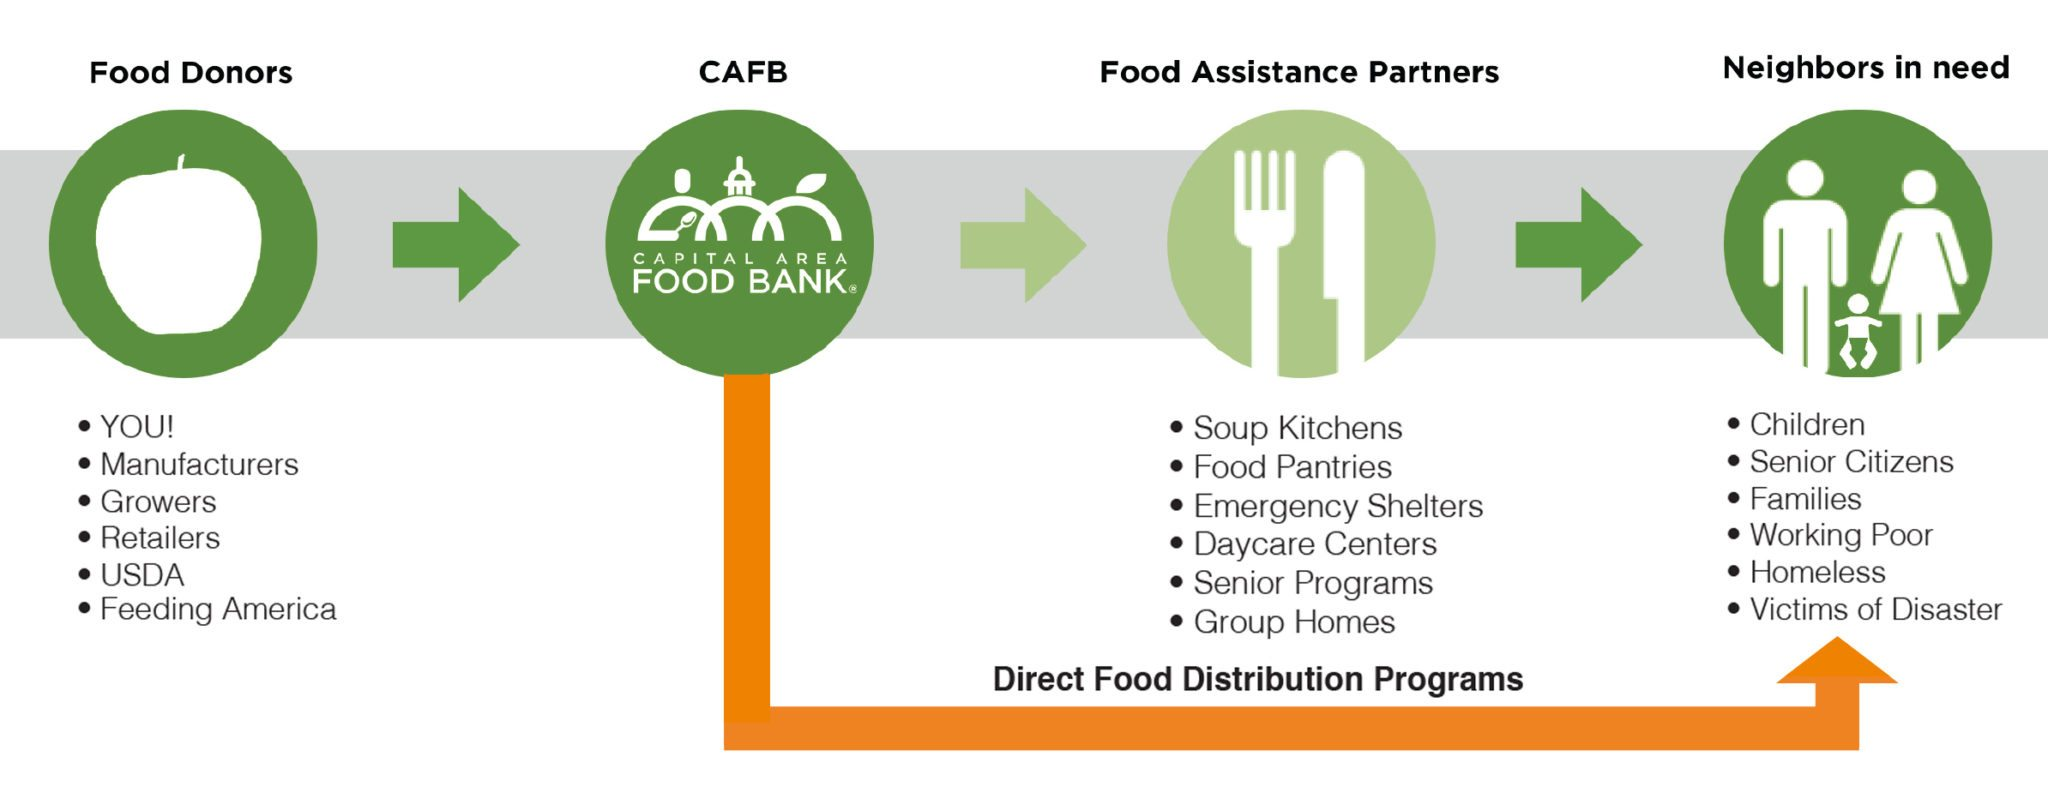 Commodity & food giveaway clipart clip art freeuse library Programs - Capital Area Food Bank – Responding to Hunger in the ... clip art freeuse library